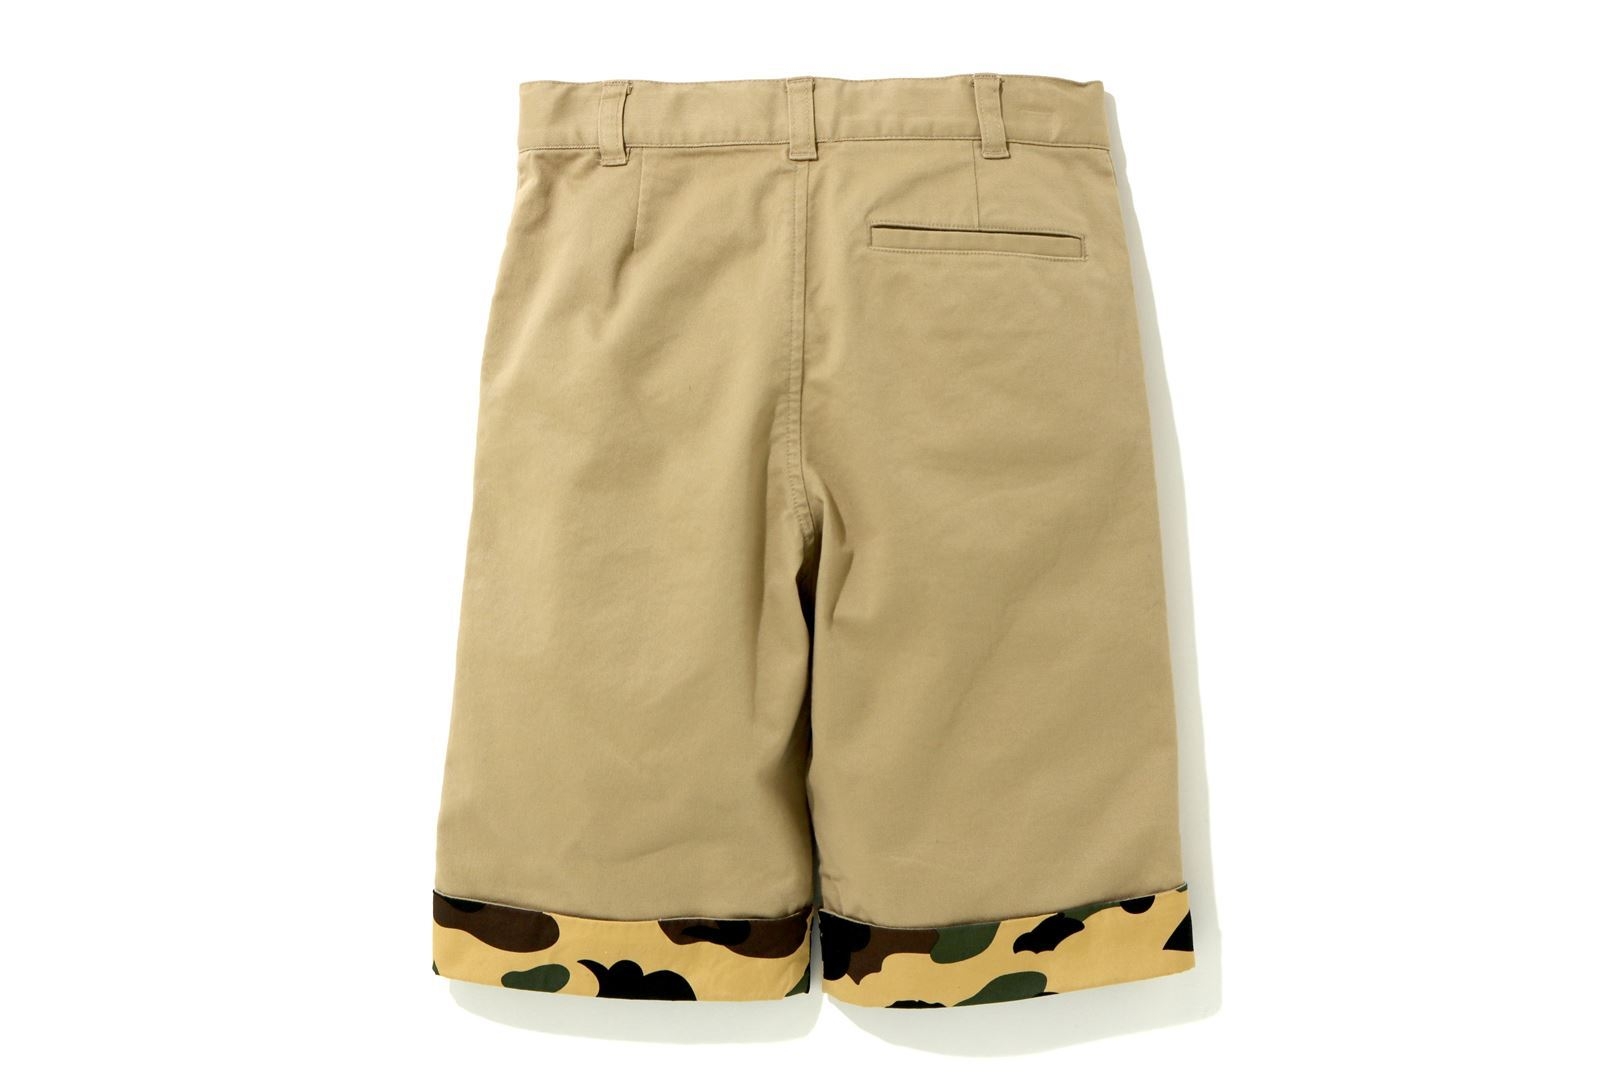 1ST CAMO TRIM CHINO SHORTS_a0174495_13410338.jpg